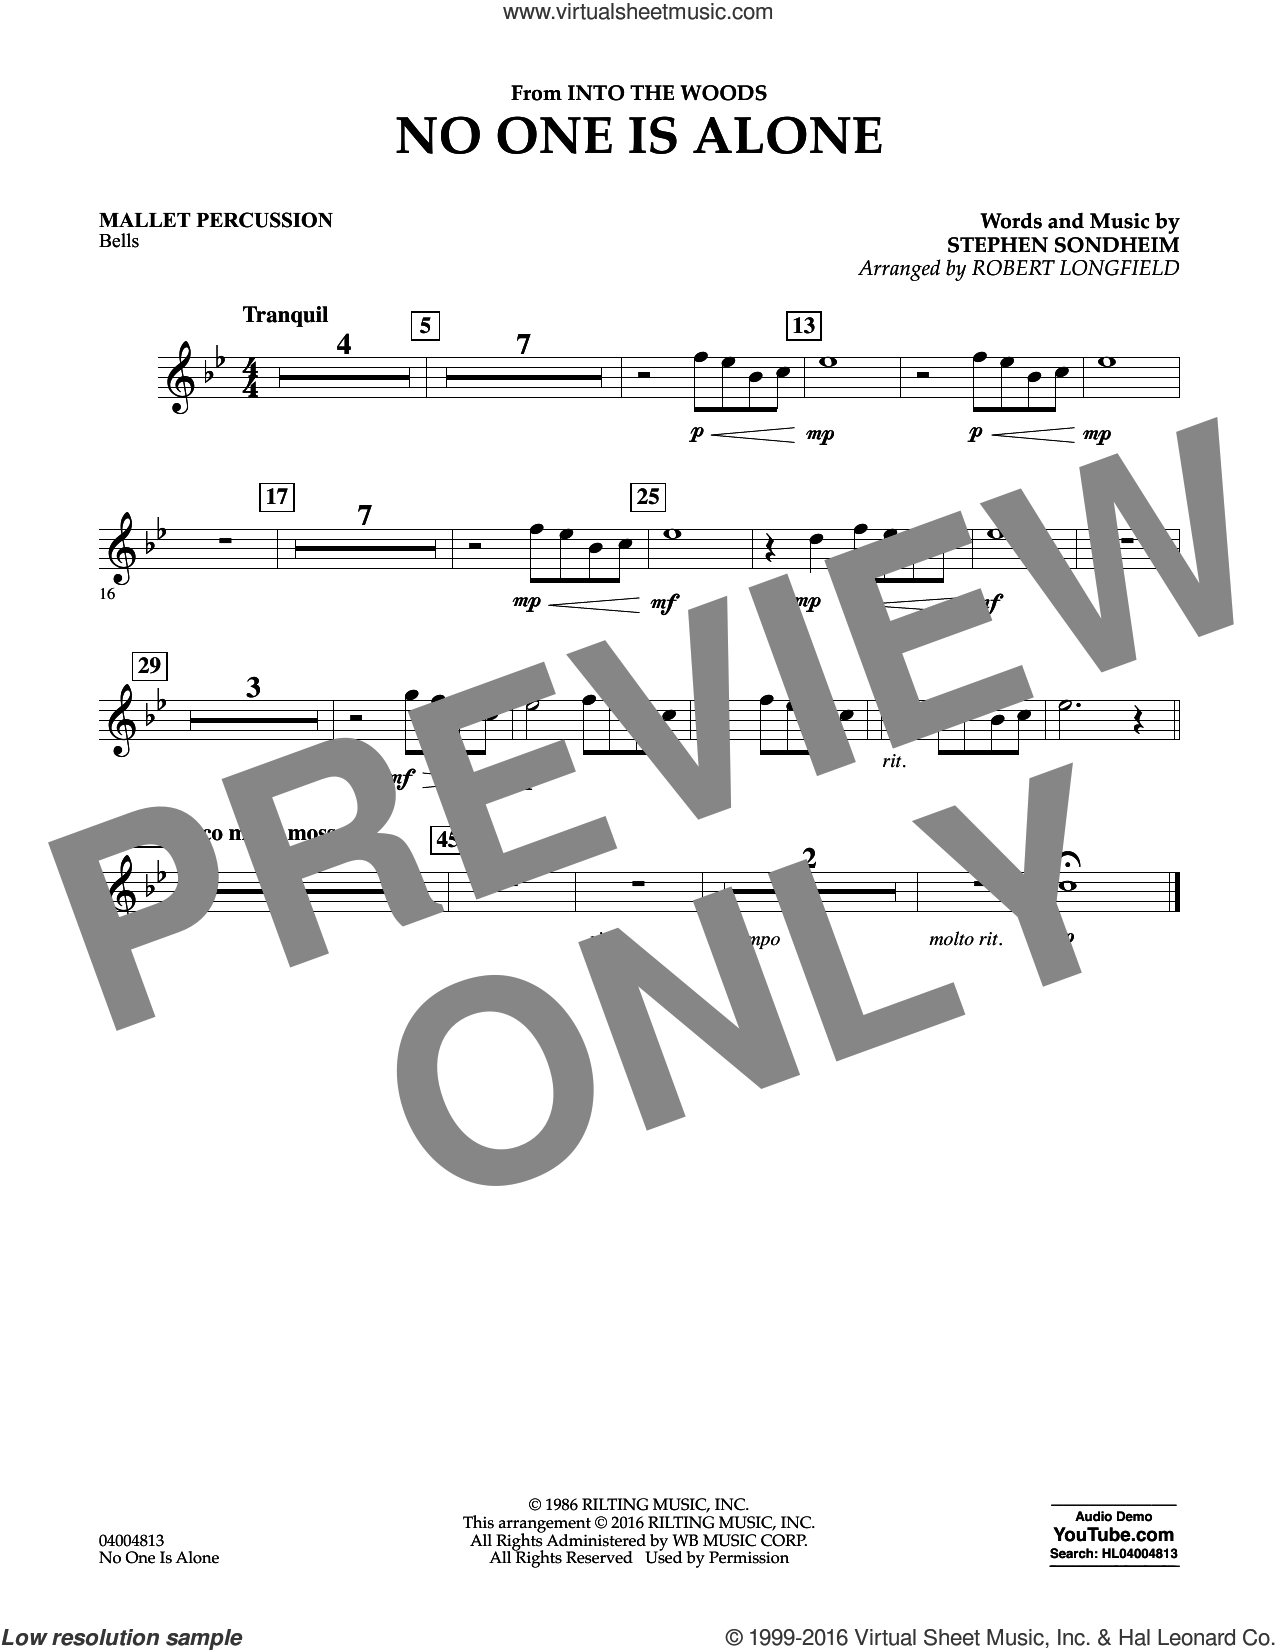 No One Is Alone sheet music for concert band (mallet percussion) by Stephen Sondheim and Robert Longfield, intermediate skill level